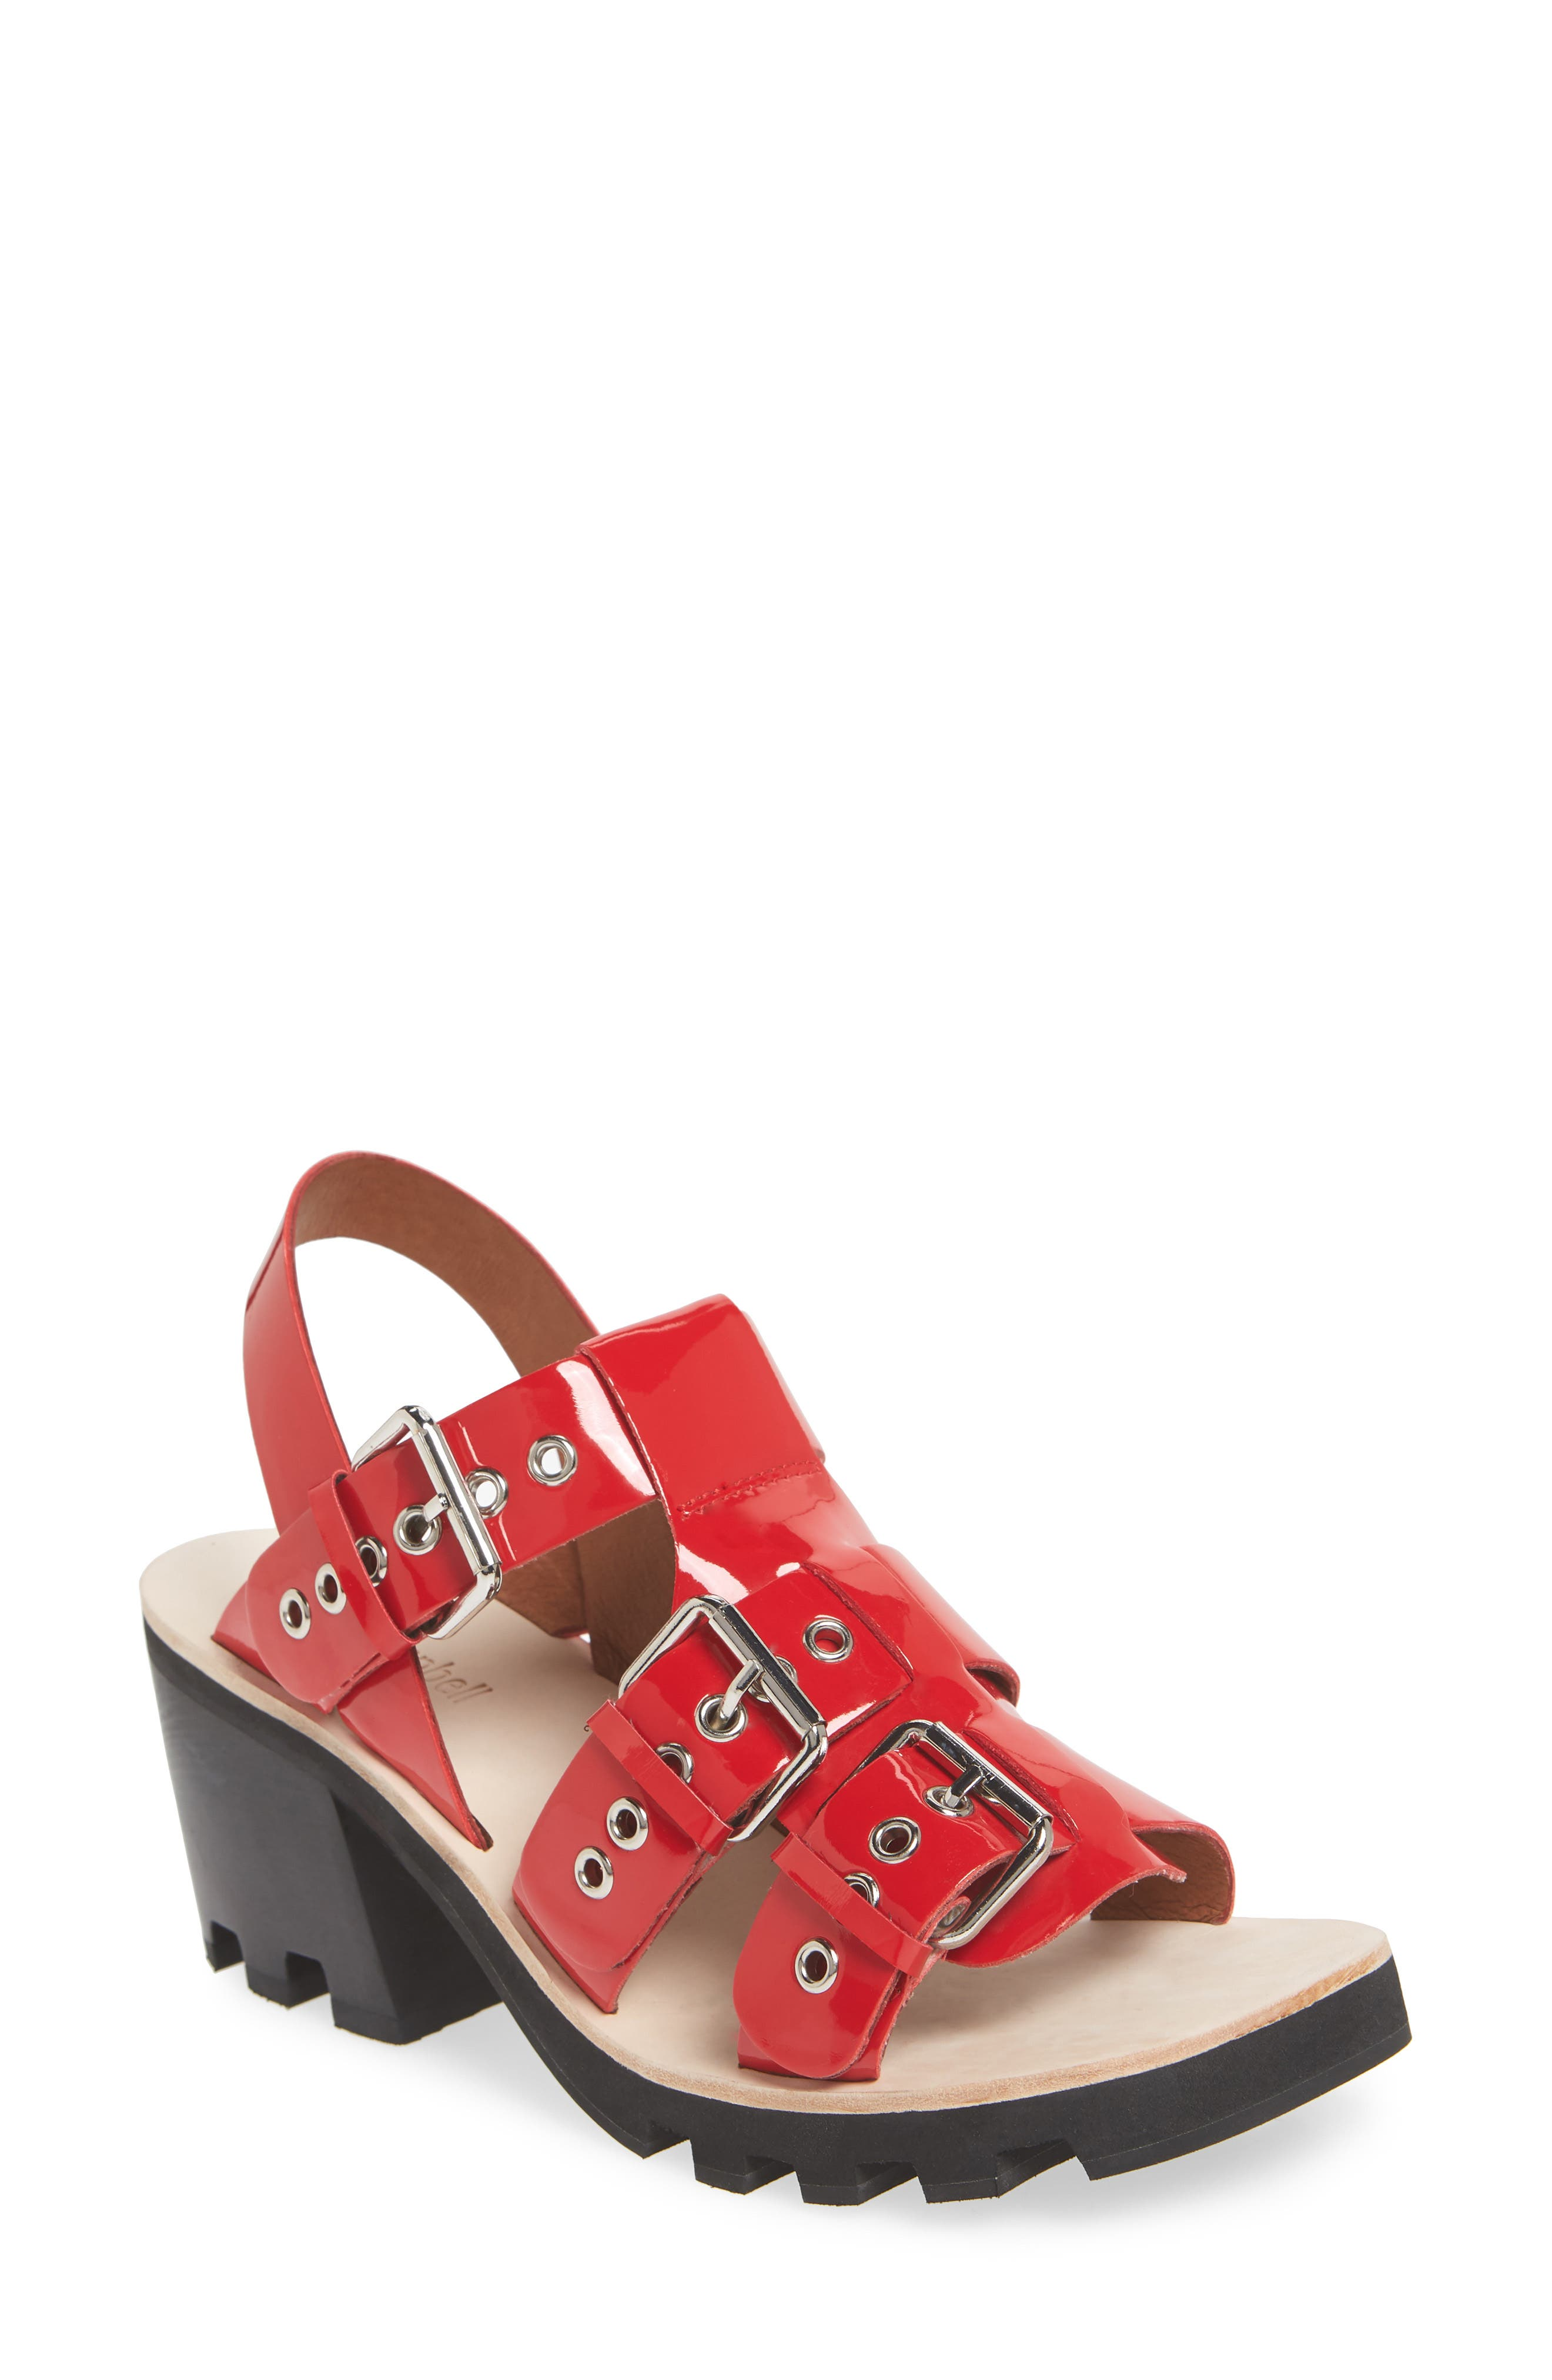 Riveter Lugged Buckle Sandal,                         Main,                         color, Red Patent